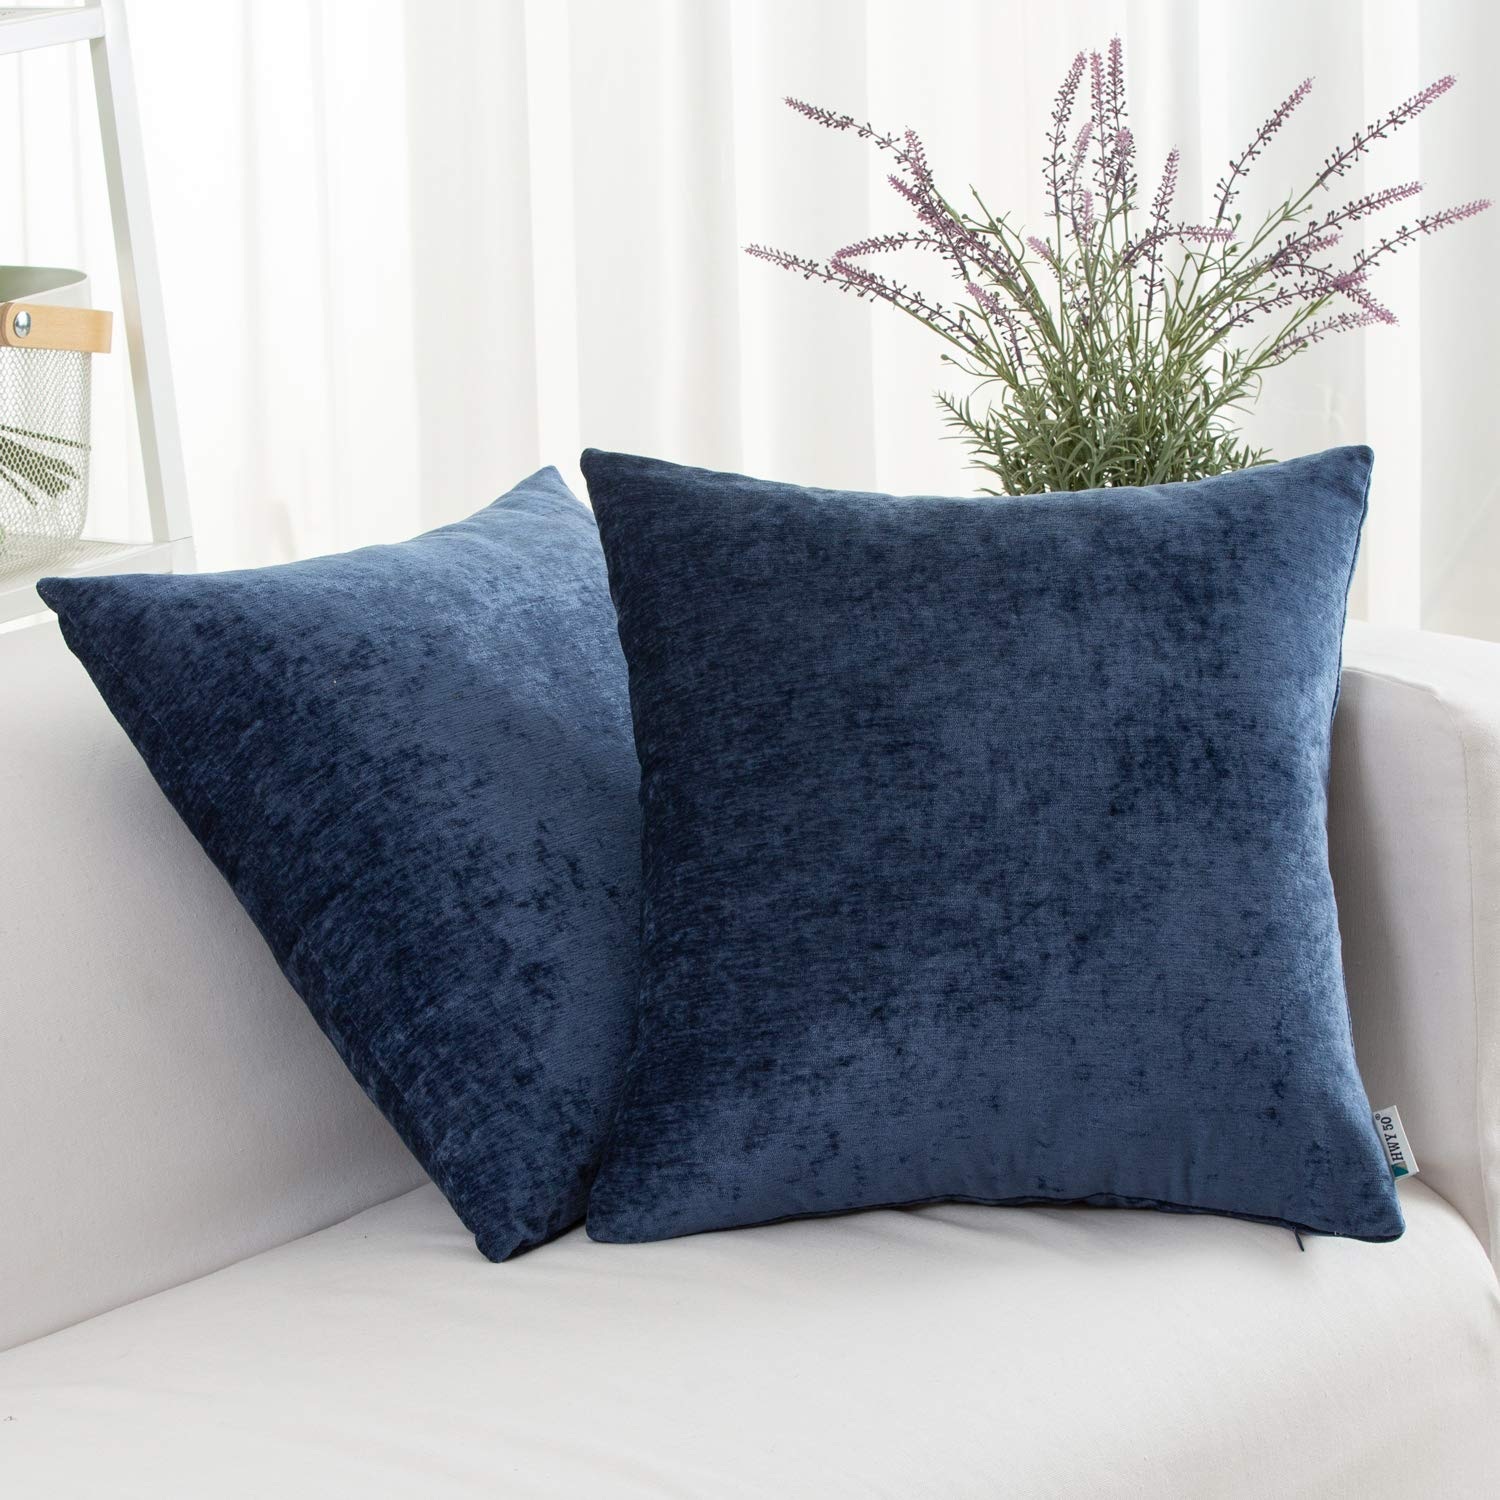 Covers Set Cushion Case for Couch Bed Living Room 18x18 Inches Blue Comfortable Pack of 2